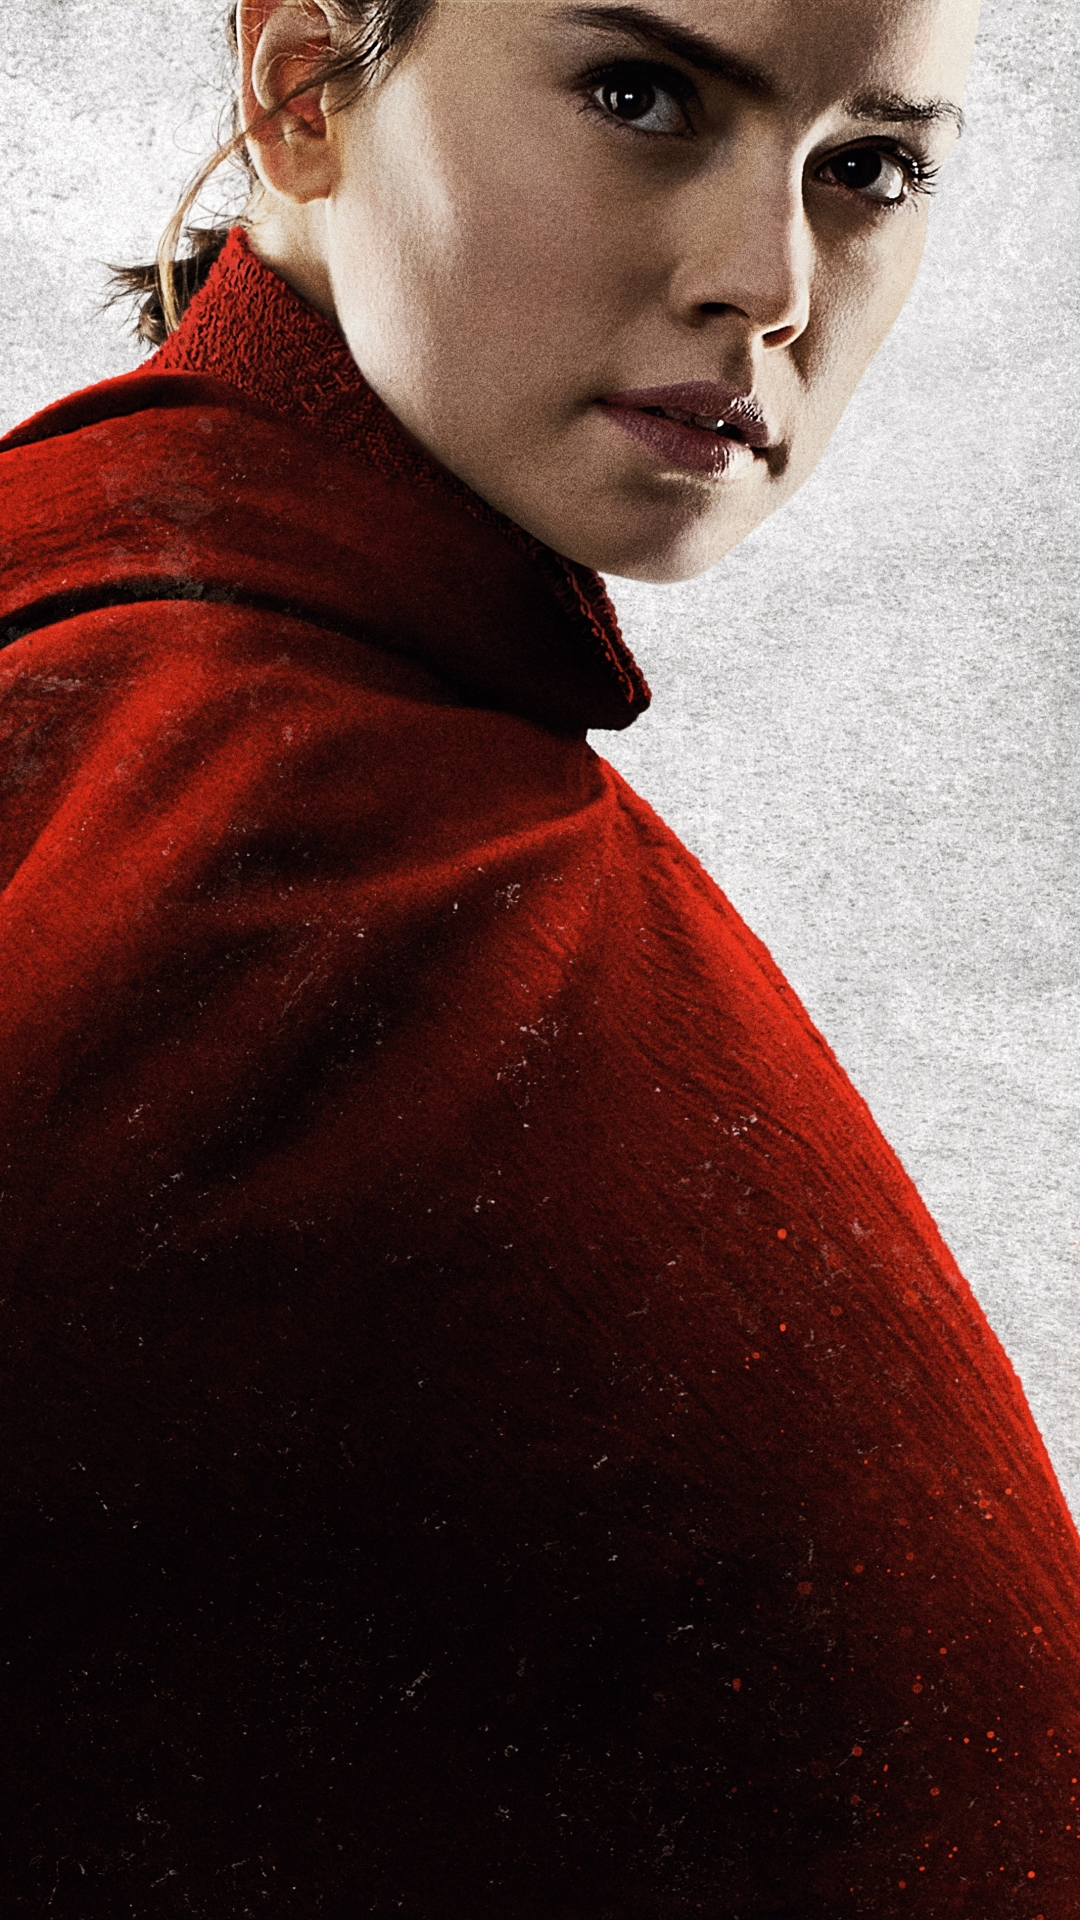 63 Star Wars The Last Jedi Apple Iphone 7 750x1334 Wallpapers